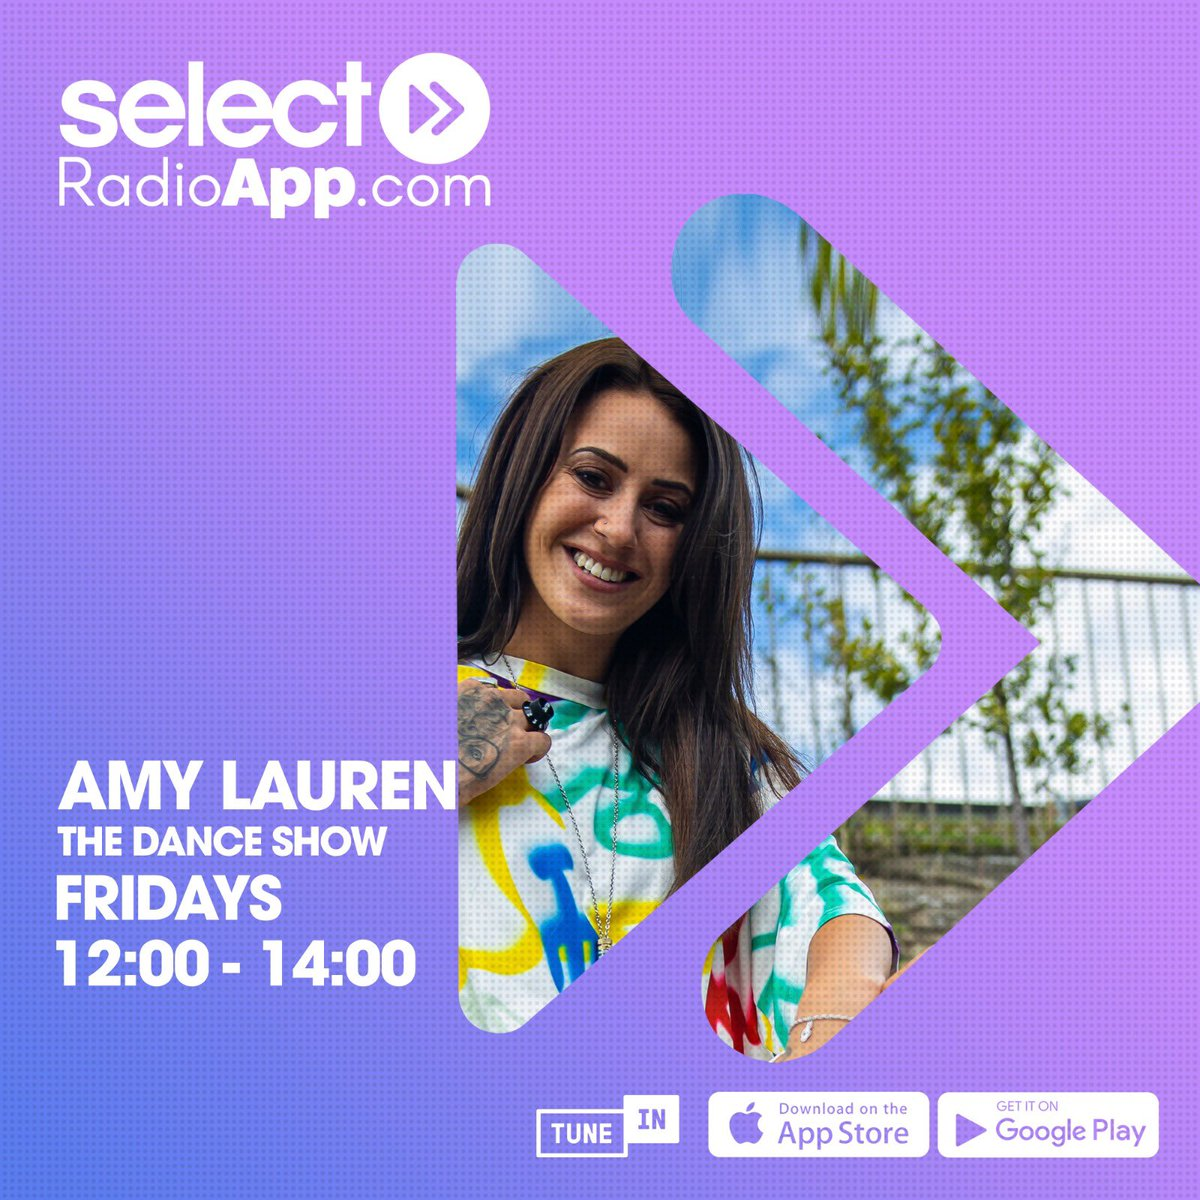 Just under an hour til I'm back on @SelectRadioApp 😻💙😻   Bigggg show lined up 🙌🙌 feat:  @OfficialGoody in the #GuestMix 🎉  Ibiza end of night bangers in #TheSwitchUpSection 🔥  A new number one Amy Lauren Loves 💙  And as always, loads of new music 🙌 https://t.co/ZltXIqTxbQ